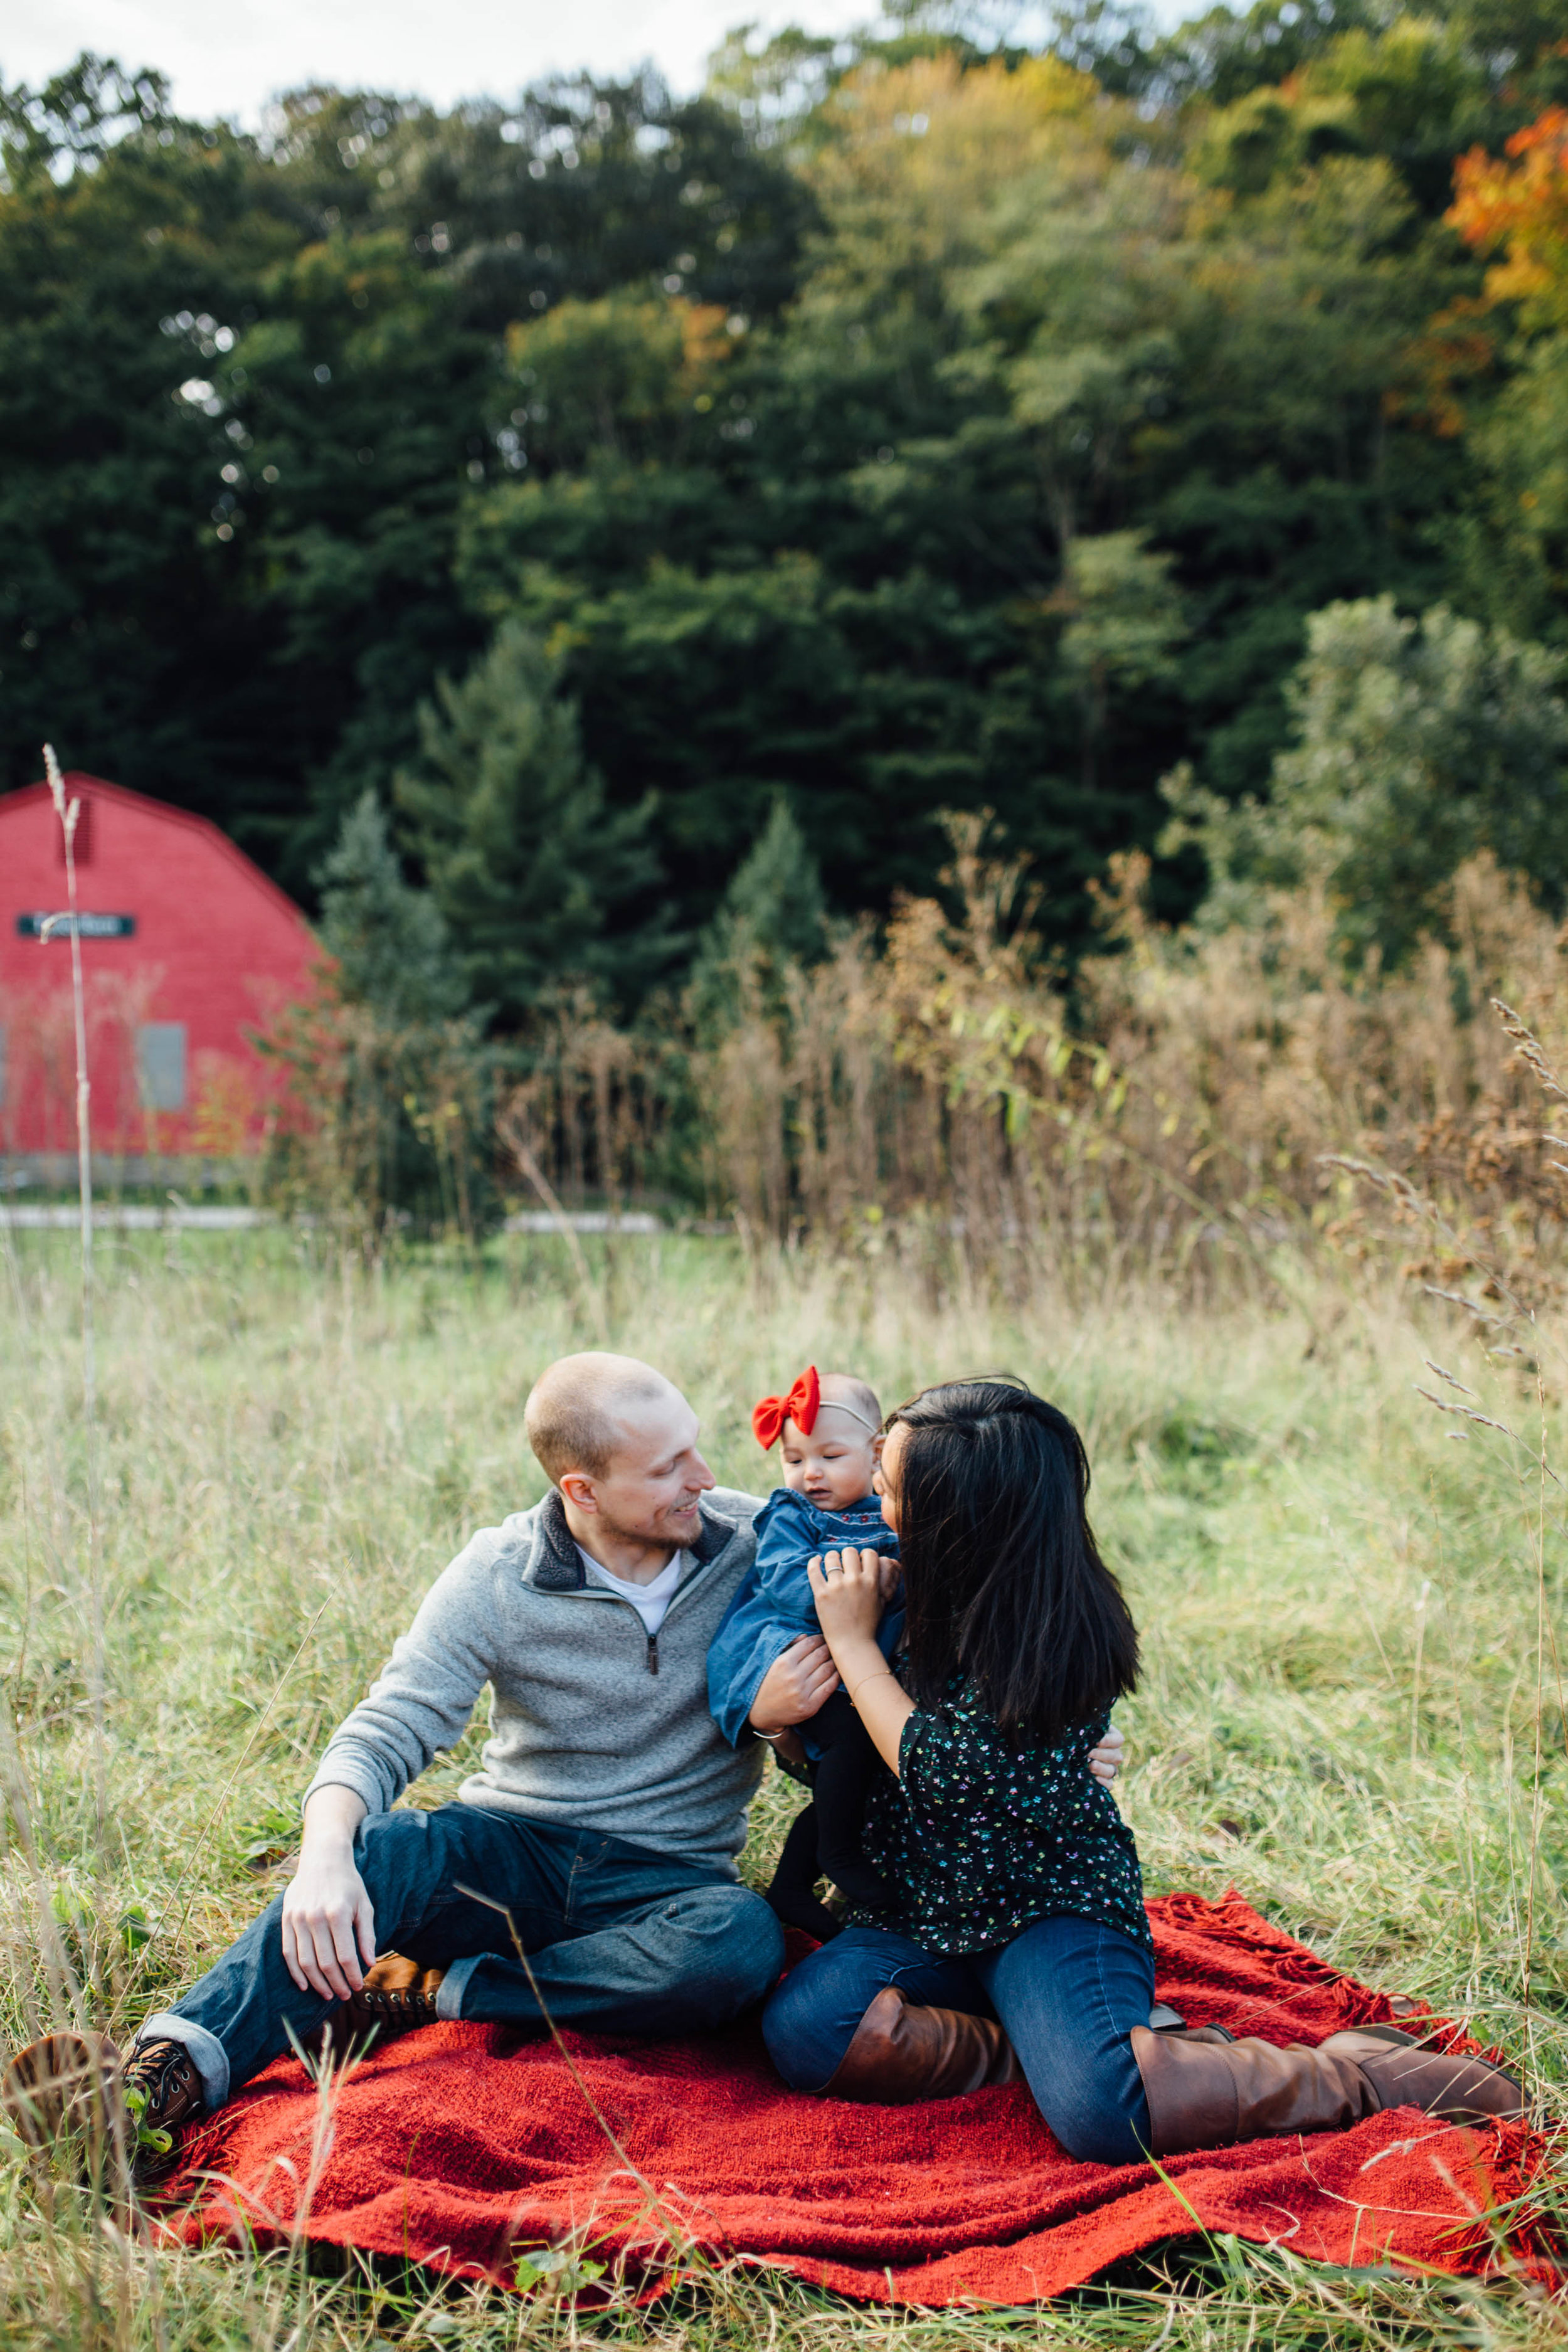 Carrie Hall Photography // Cleveland, Ohio // Family Photographer // Rocky River Mertoparks